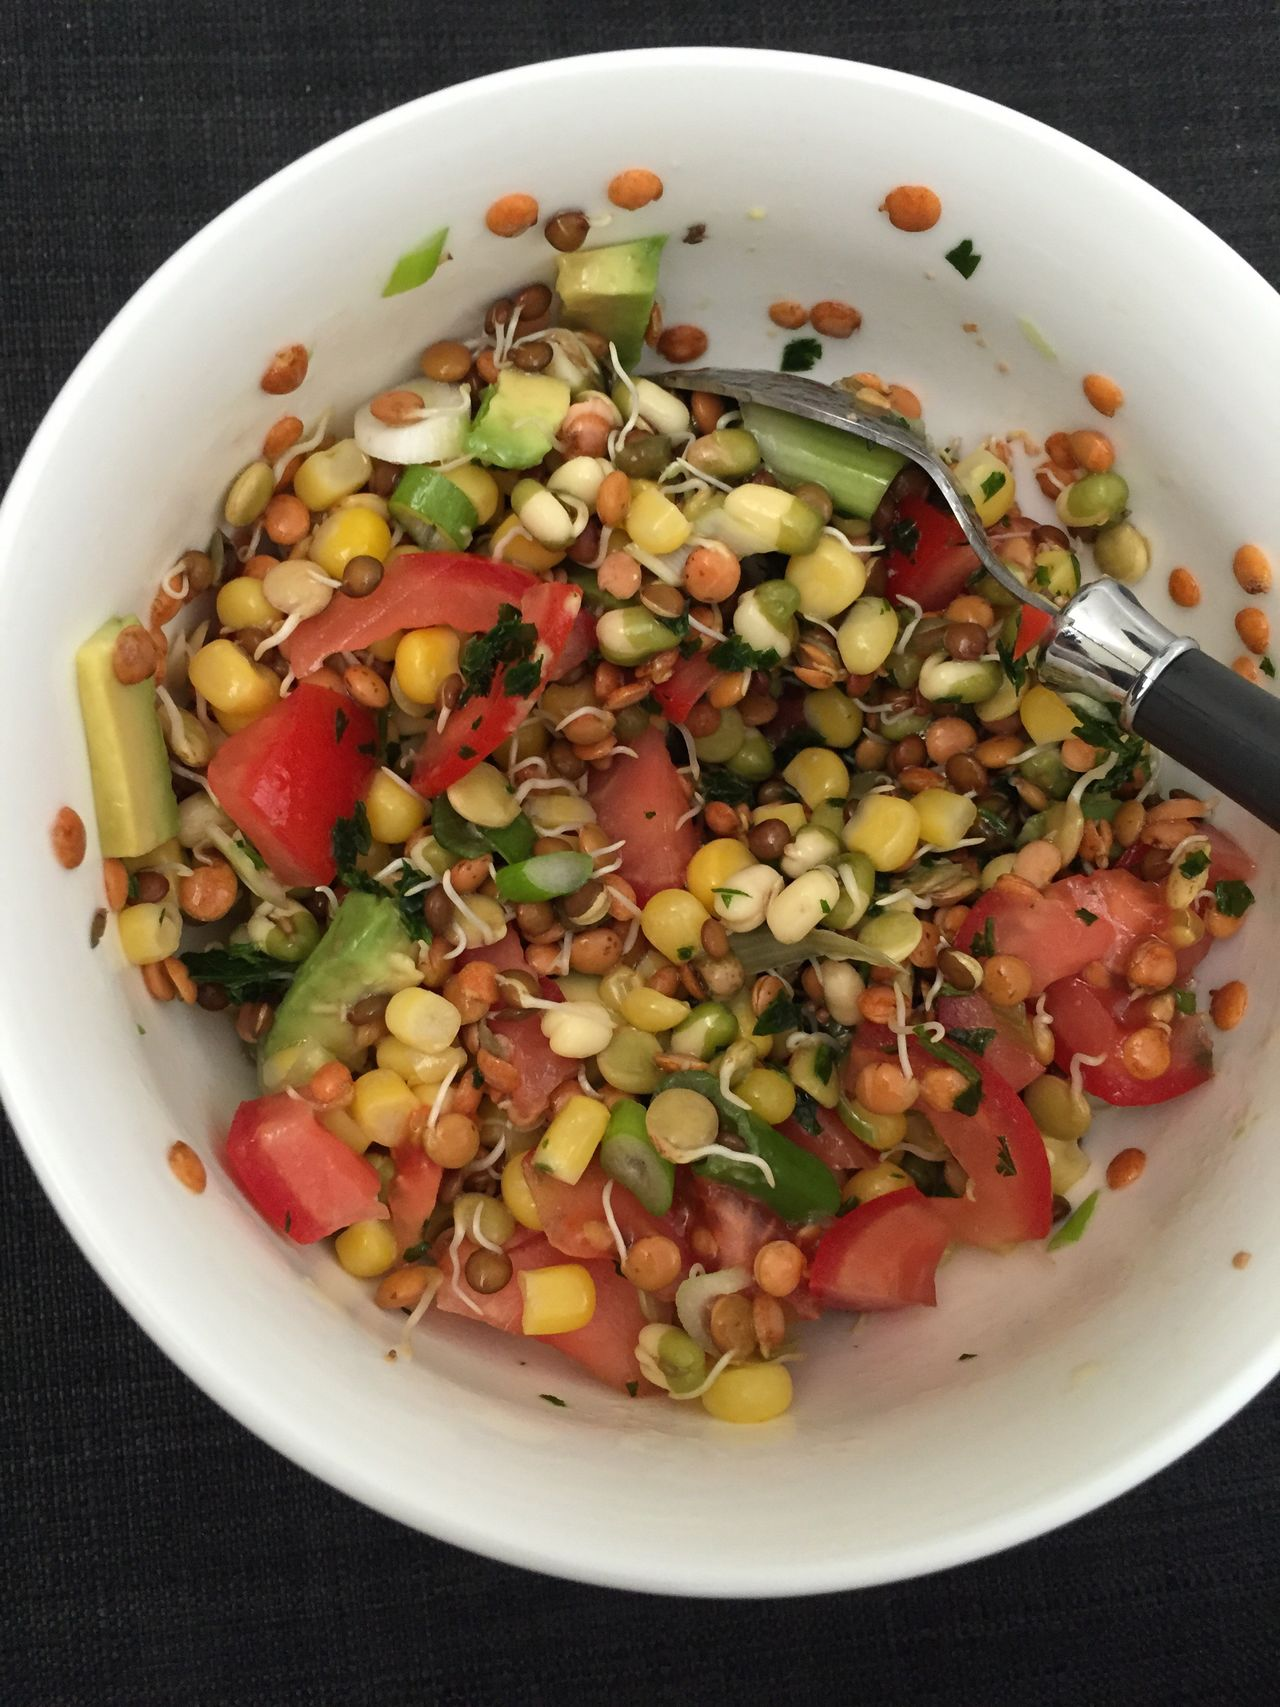 Healthy Eating Food And Drink Freshness Salad Food Bowl Vegetable No People Plate Indoors  Close-up Ready-to-eat Table Directly Above Vegetarian Food Bean Legume Family Germinated Lentils Corn Tomatoes Avocado Germinated Serving Size